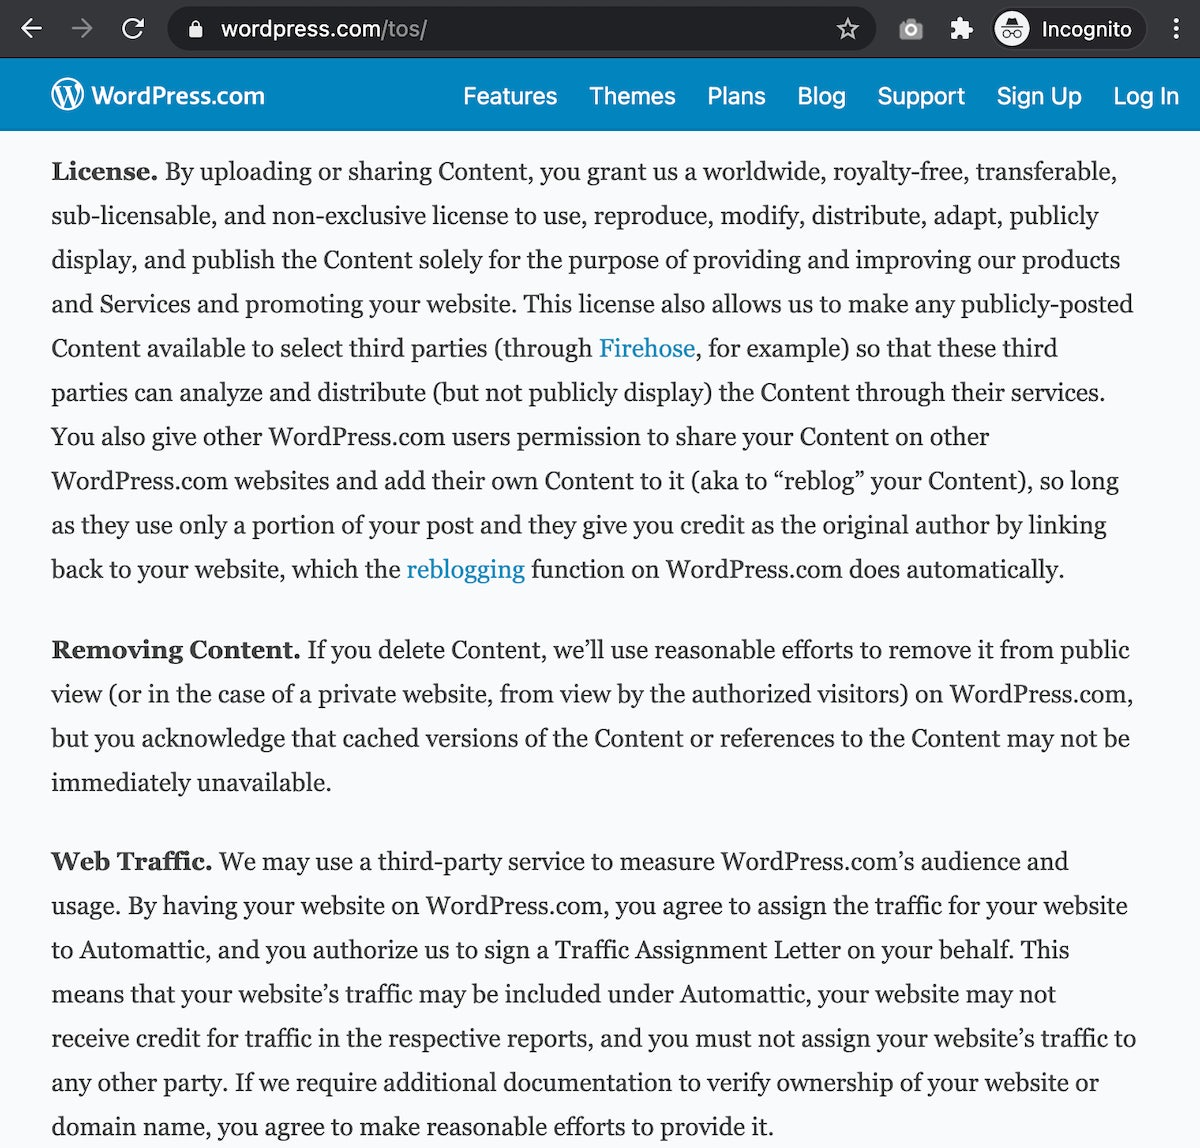 WordPress.com - Terms of Service